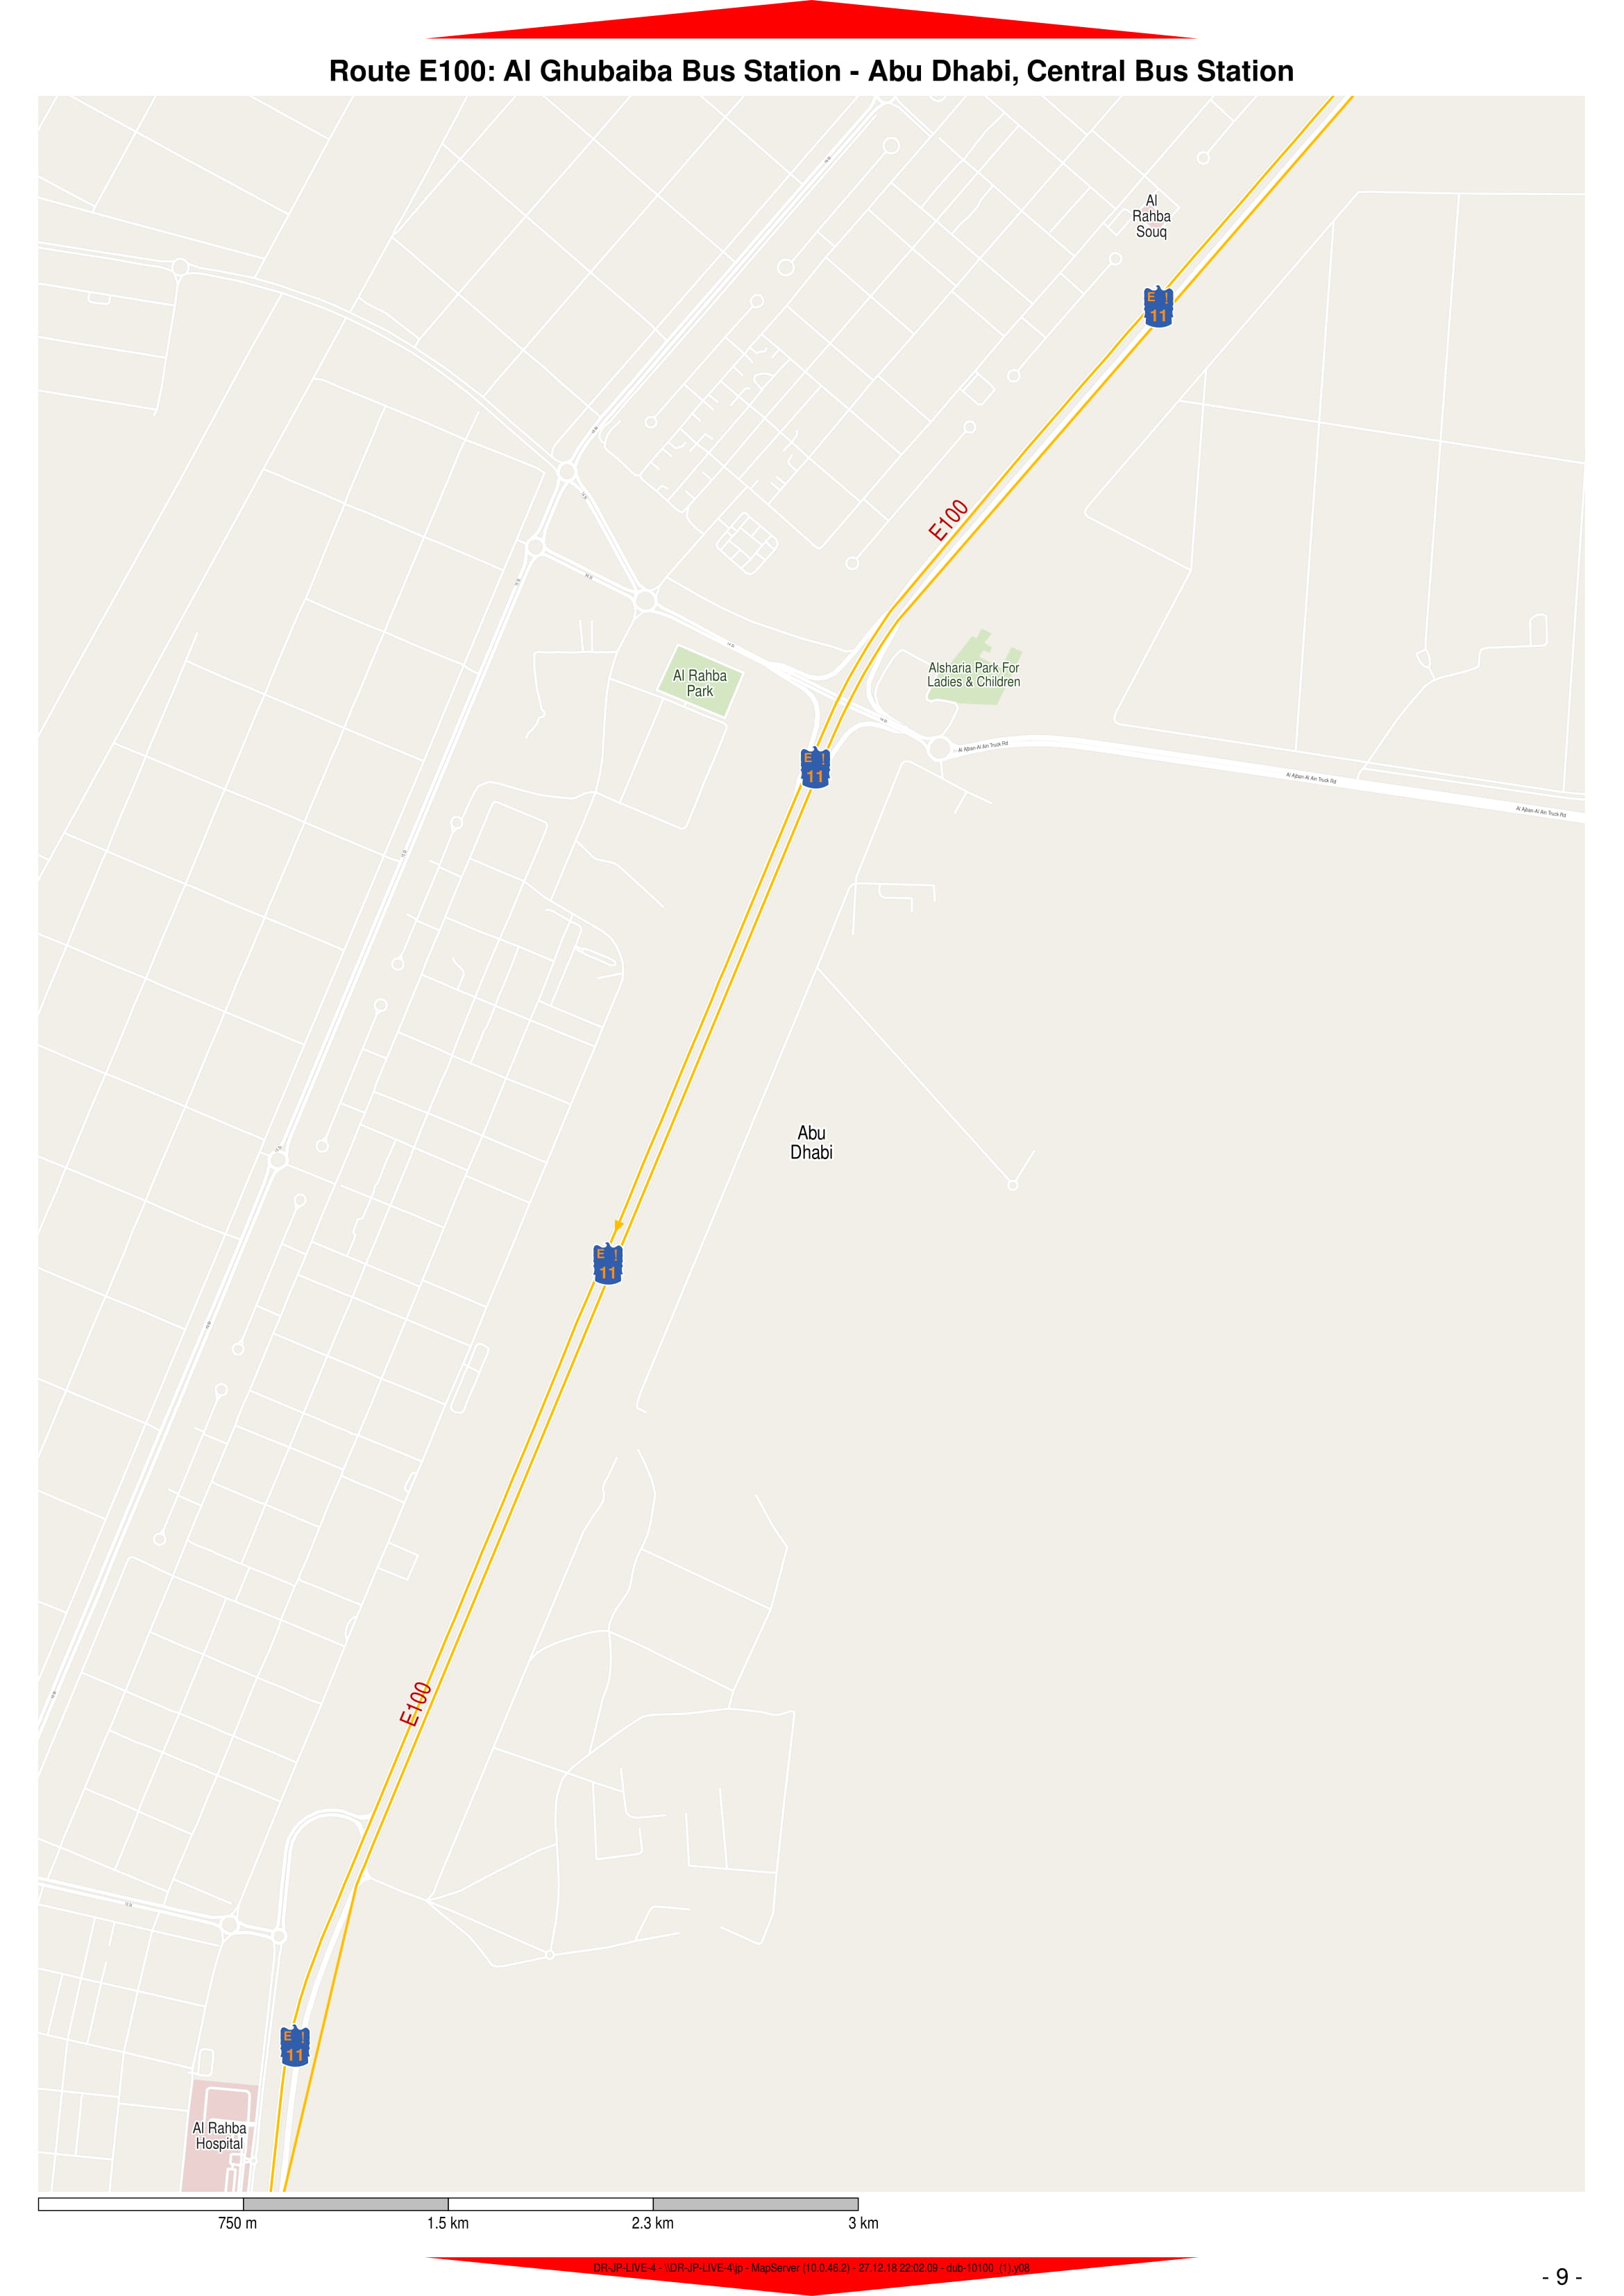 E100 Bus Route in Dubai - Time Schedule, Stops and Maps